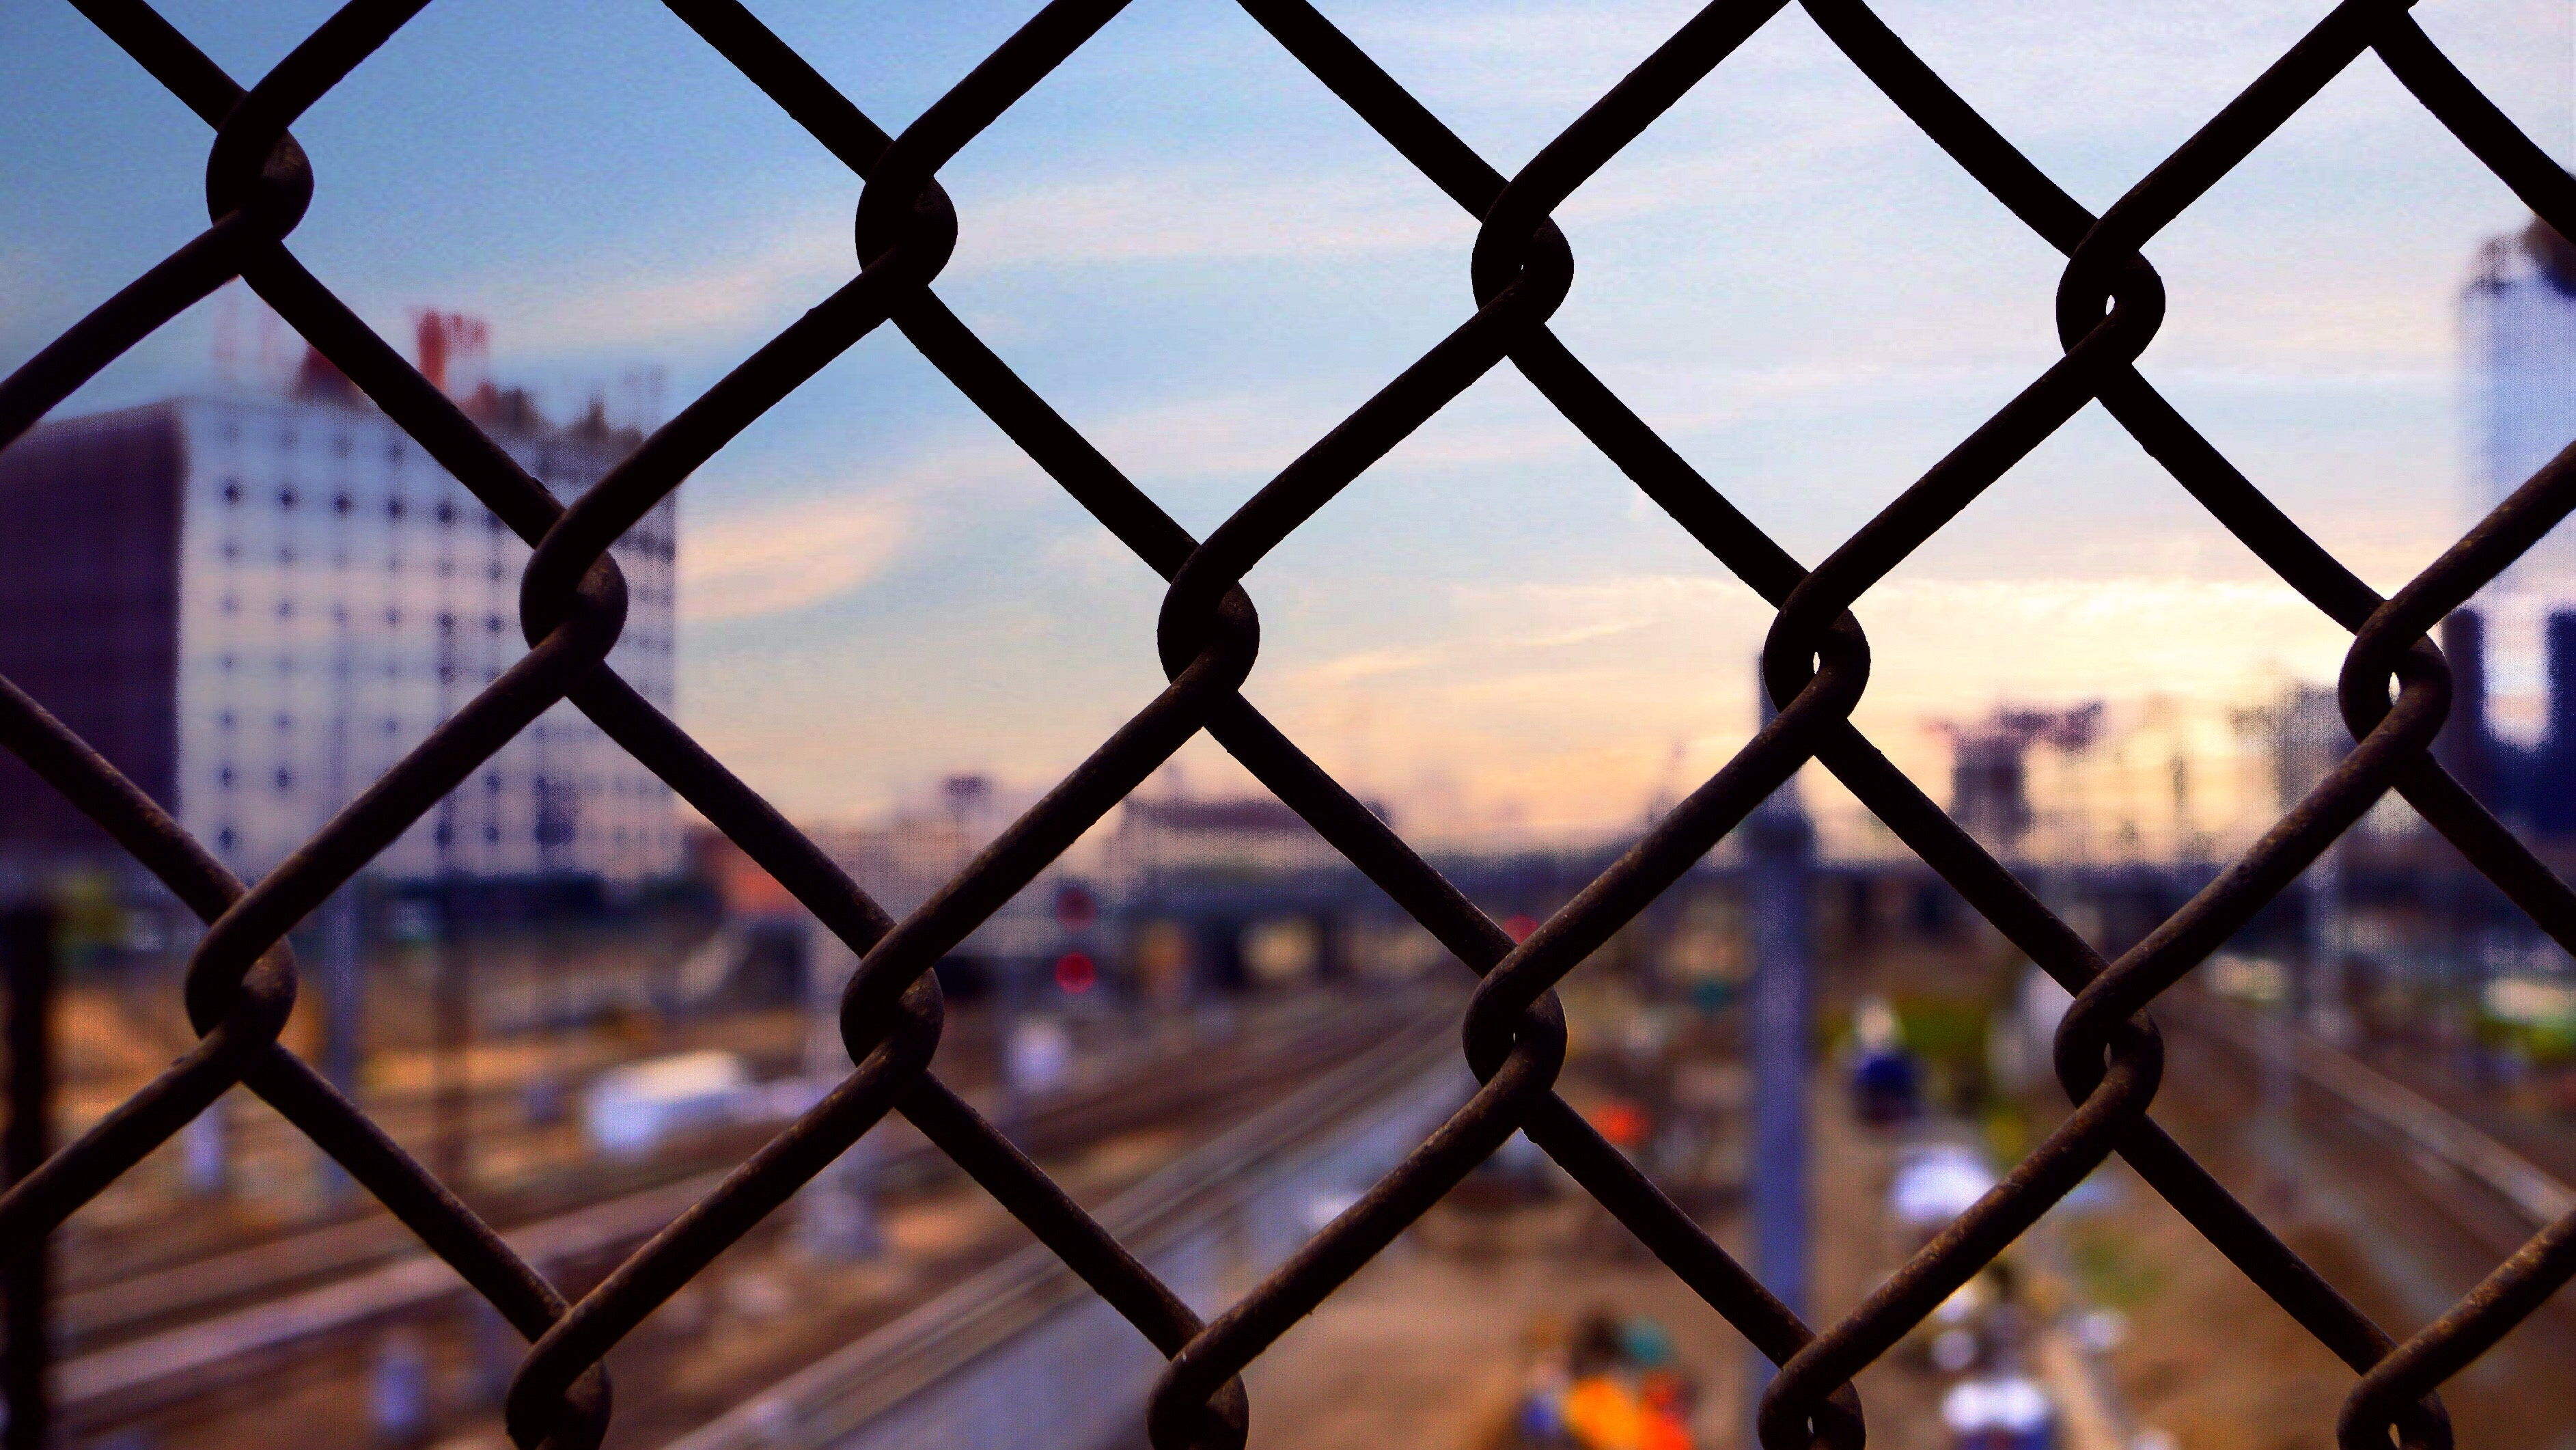 59857 download wallpaper Miscellanea, Miscellaneous, Blur, Smooth, Grid, Fence, Fencing, Enclosure screensavers and pictures for free